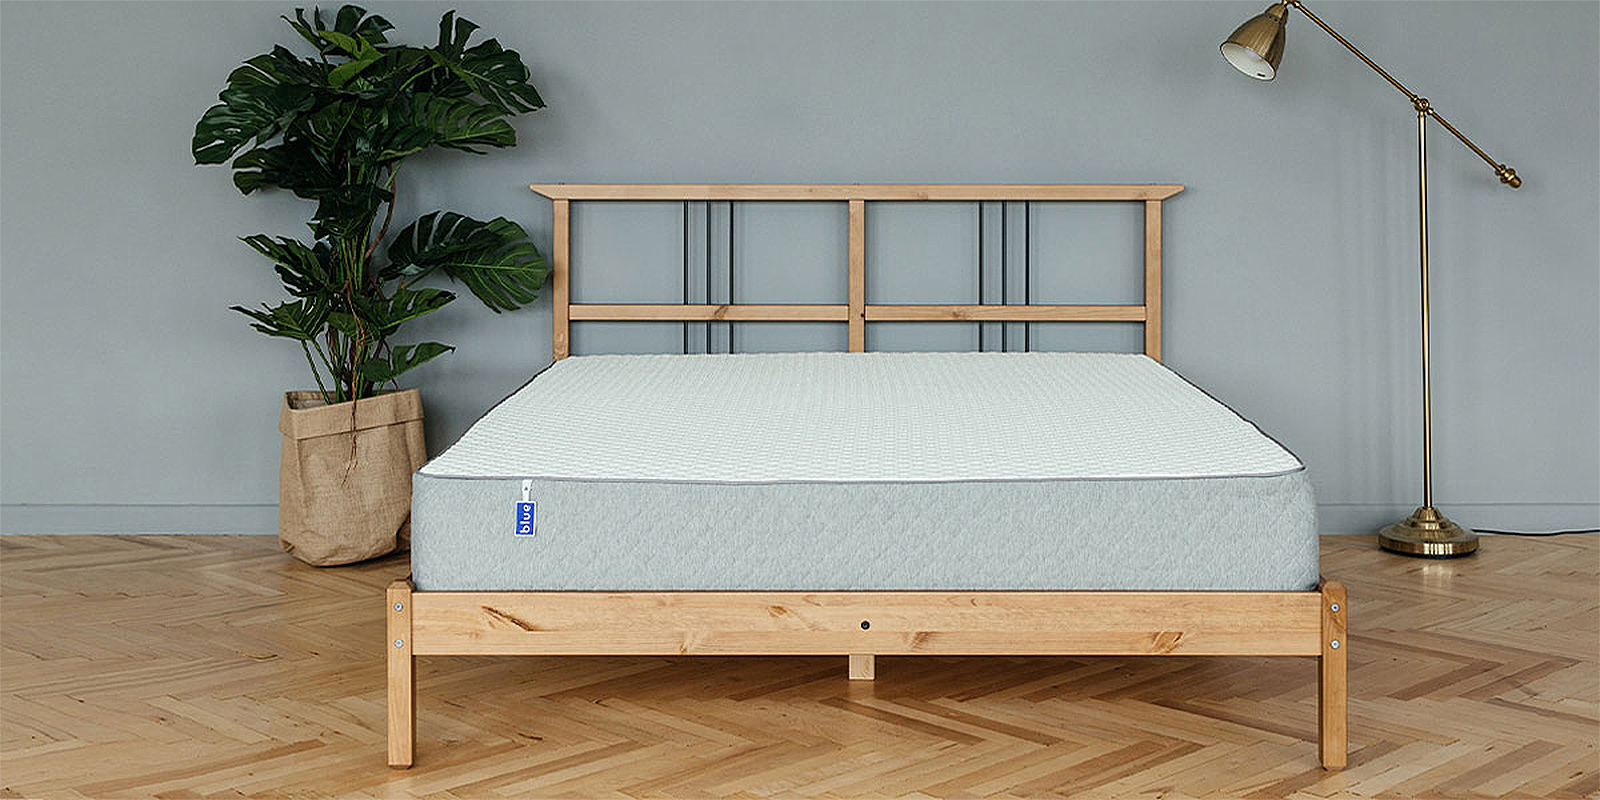 Матрас HomeMe Blue Sleep Hybrid от Homeme.ru